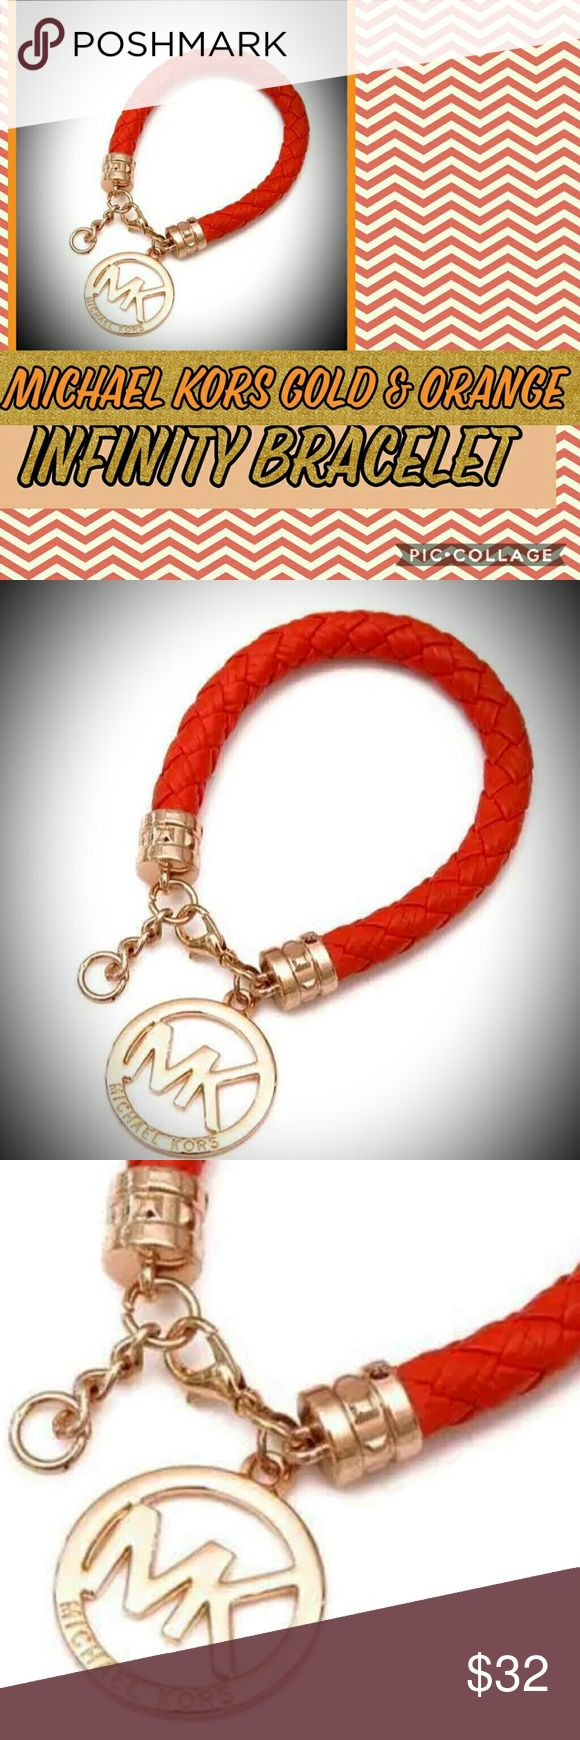 "🌺One time offer for tonight. ..$18. No less, 🌺 🌺Brand New Michael Kors Infinity Cuff Bangle Gold Tone & Orange braided Leather Bracelet W/ Logo. 🌺100% Authentic...🌺 ◾Condition: 100% brand new and high quality ◾Style: Bangle ◾Size: This piece measure's 7 1/2"" plus has a 1"" extension if needed ◾Material: Leather ◾Quantity: 1 Michael Kors Jewelry Bracelets"